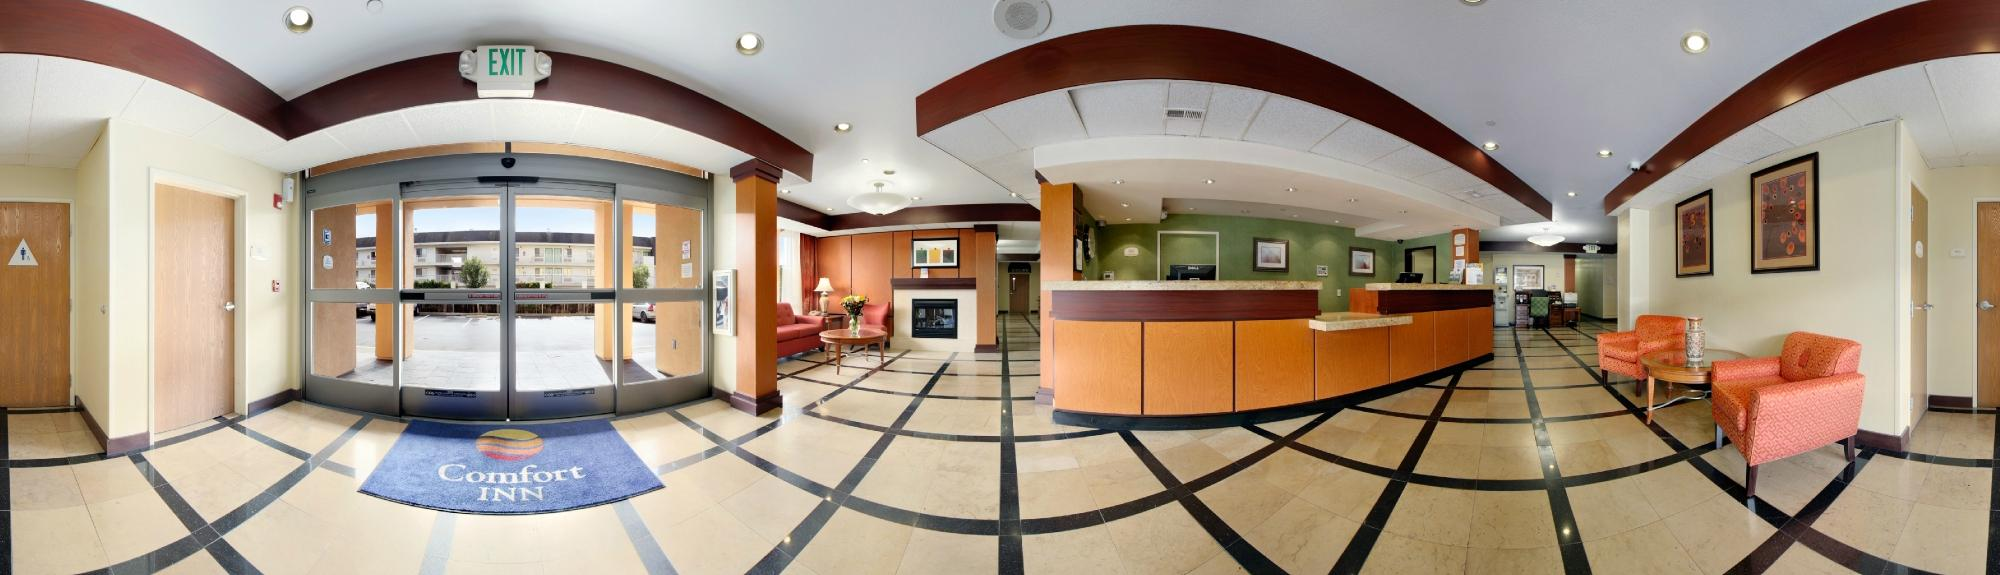 Comfort Inn & Suites Oakland Airport